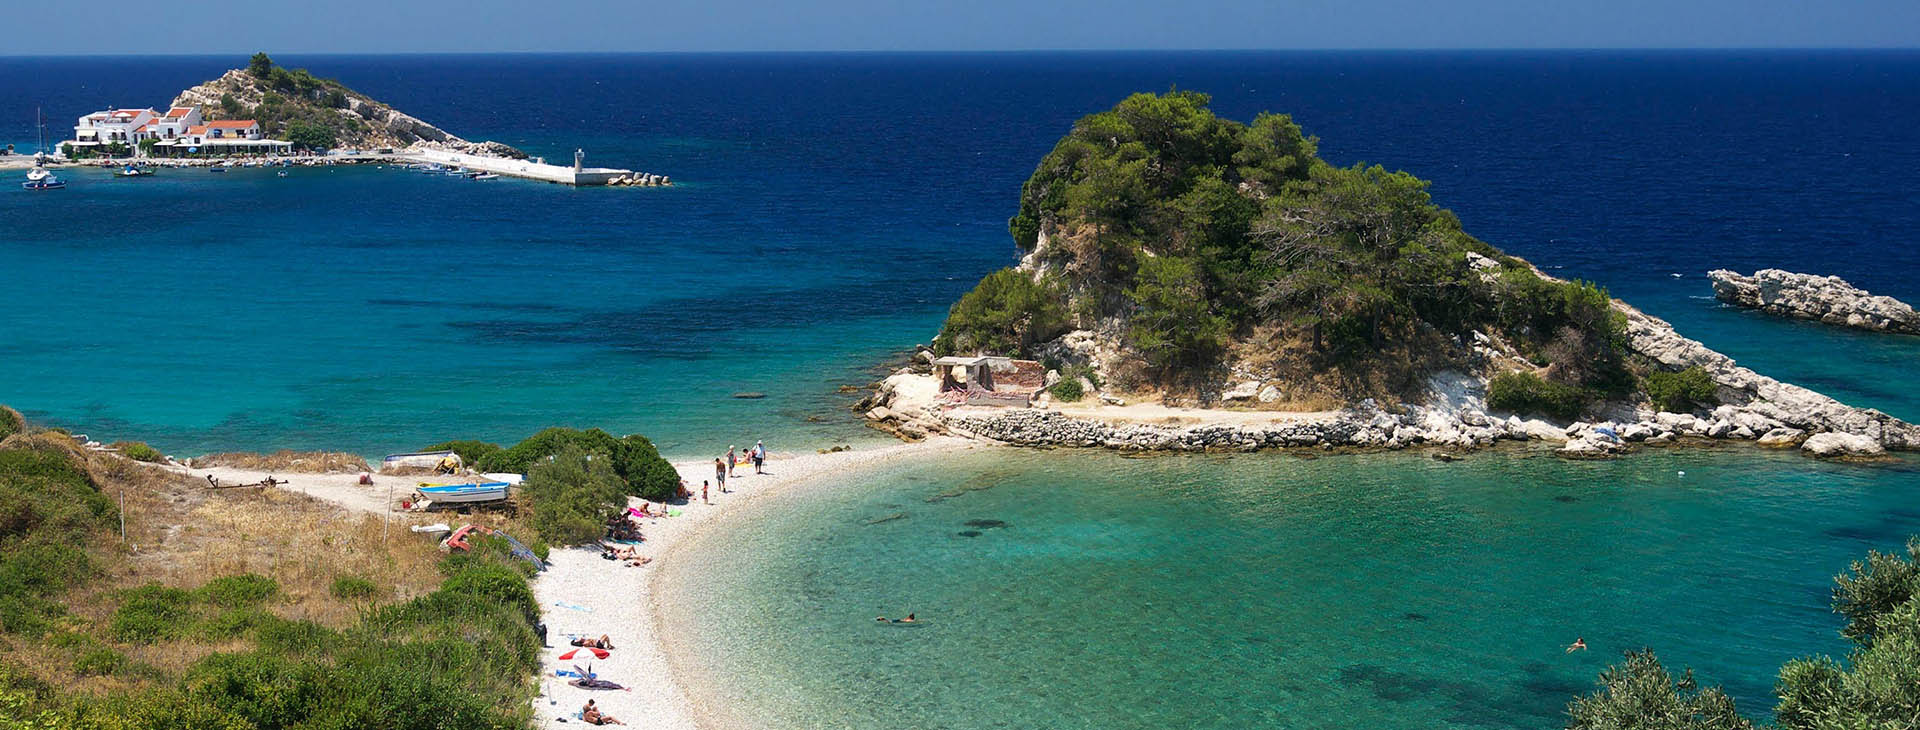 Samos hotels special offers discounted rates Samos North Aegean